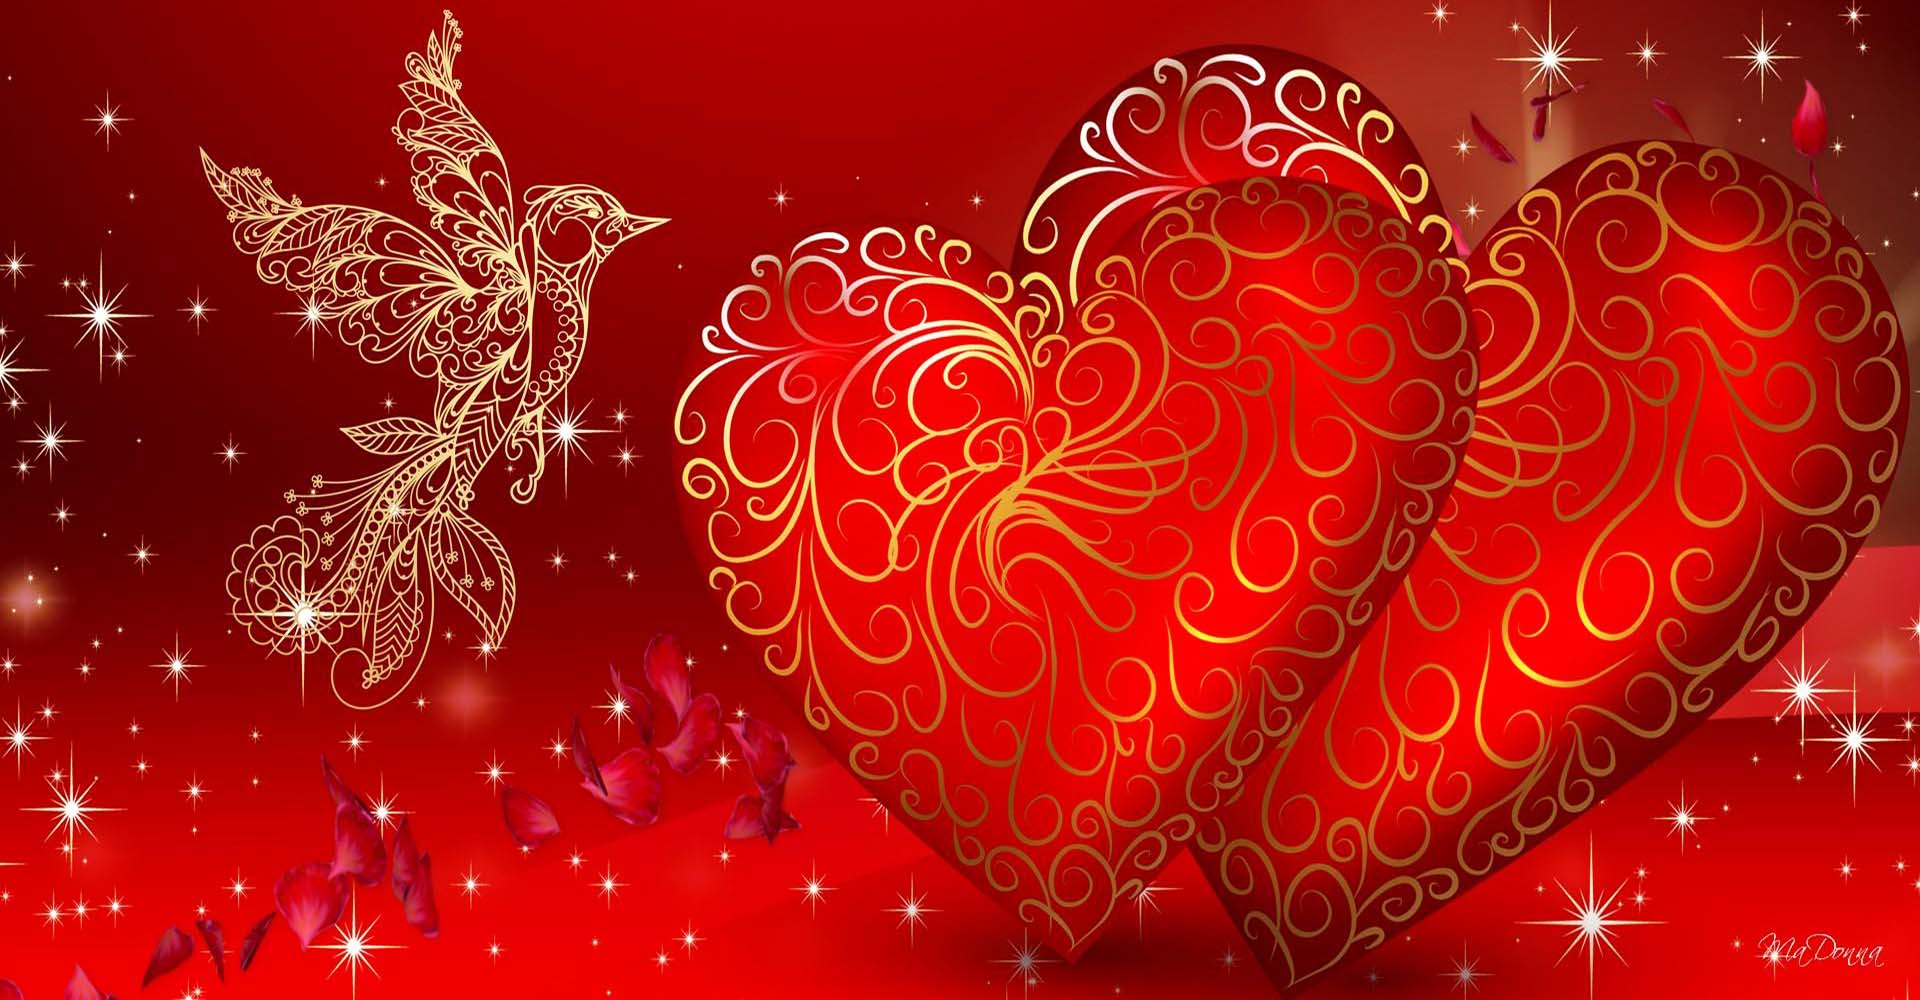 Love Heart Wallpaper Background 3d : Love Heart Wallpapers 2016 - Wallpaper cave